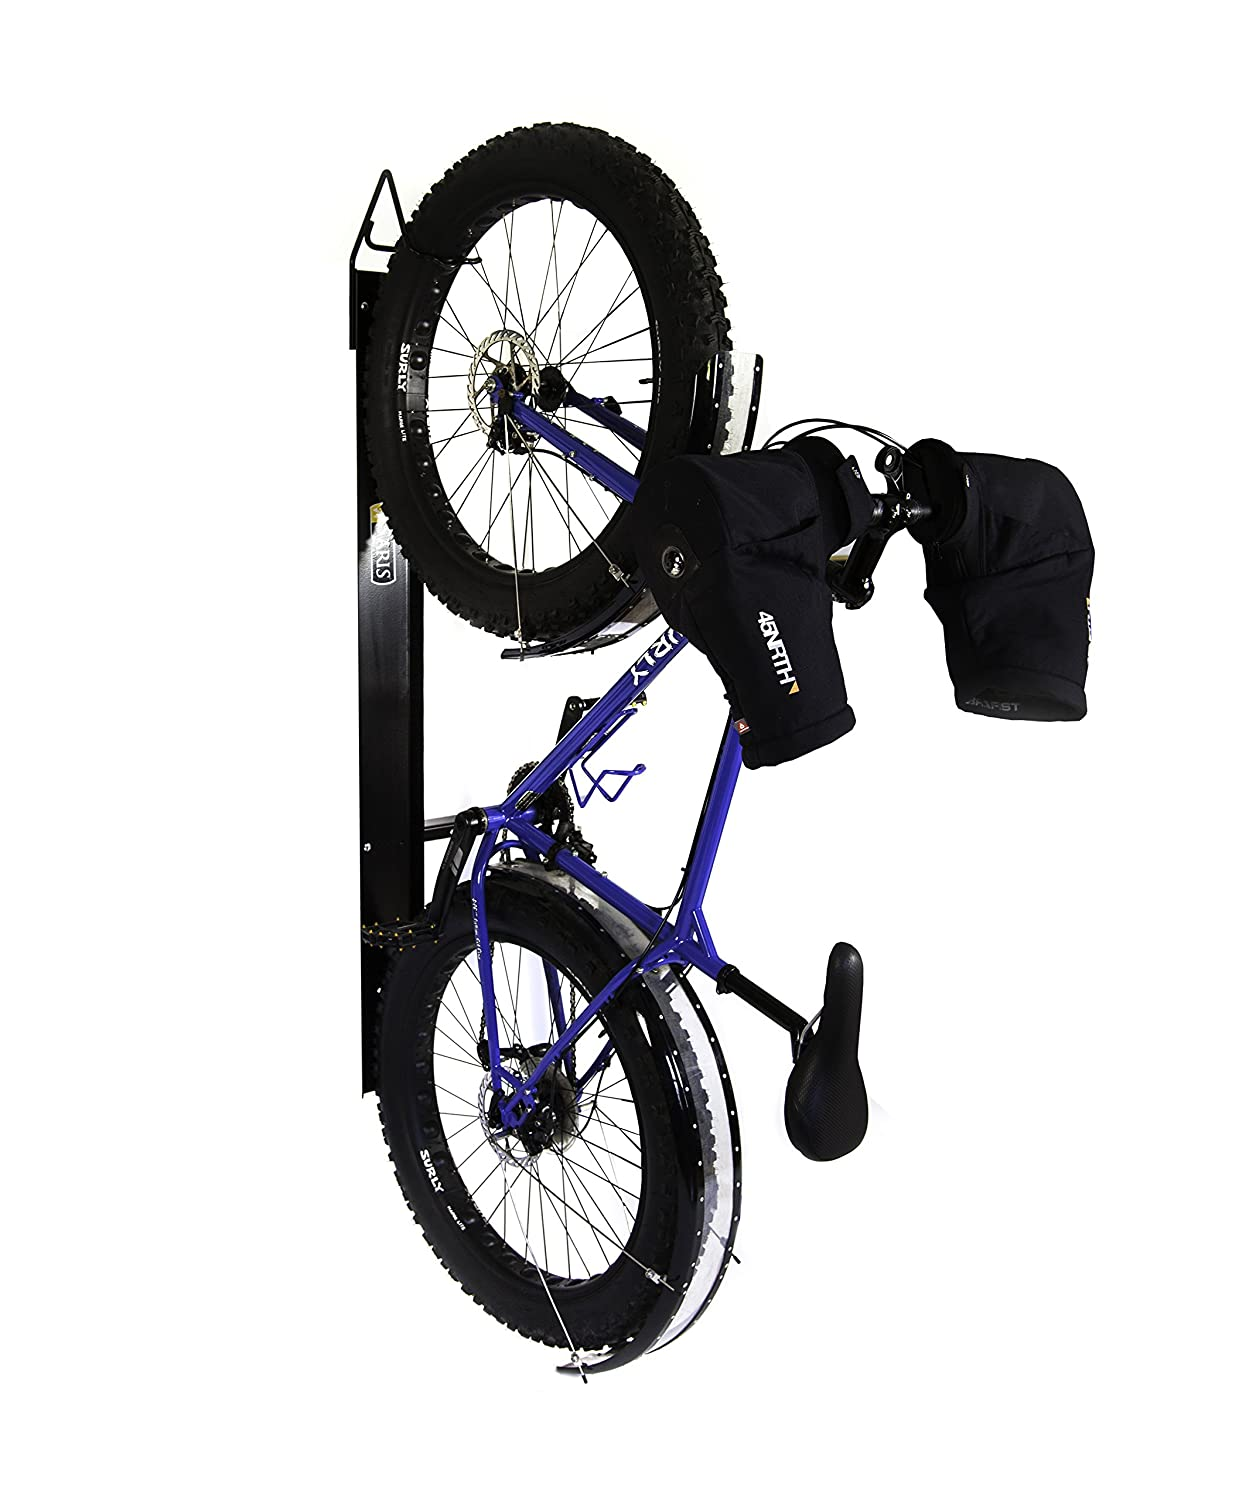 Saris Fat Tire Bike Track, Black by Saris   B01HQMZAFY